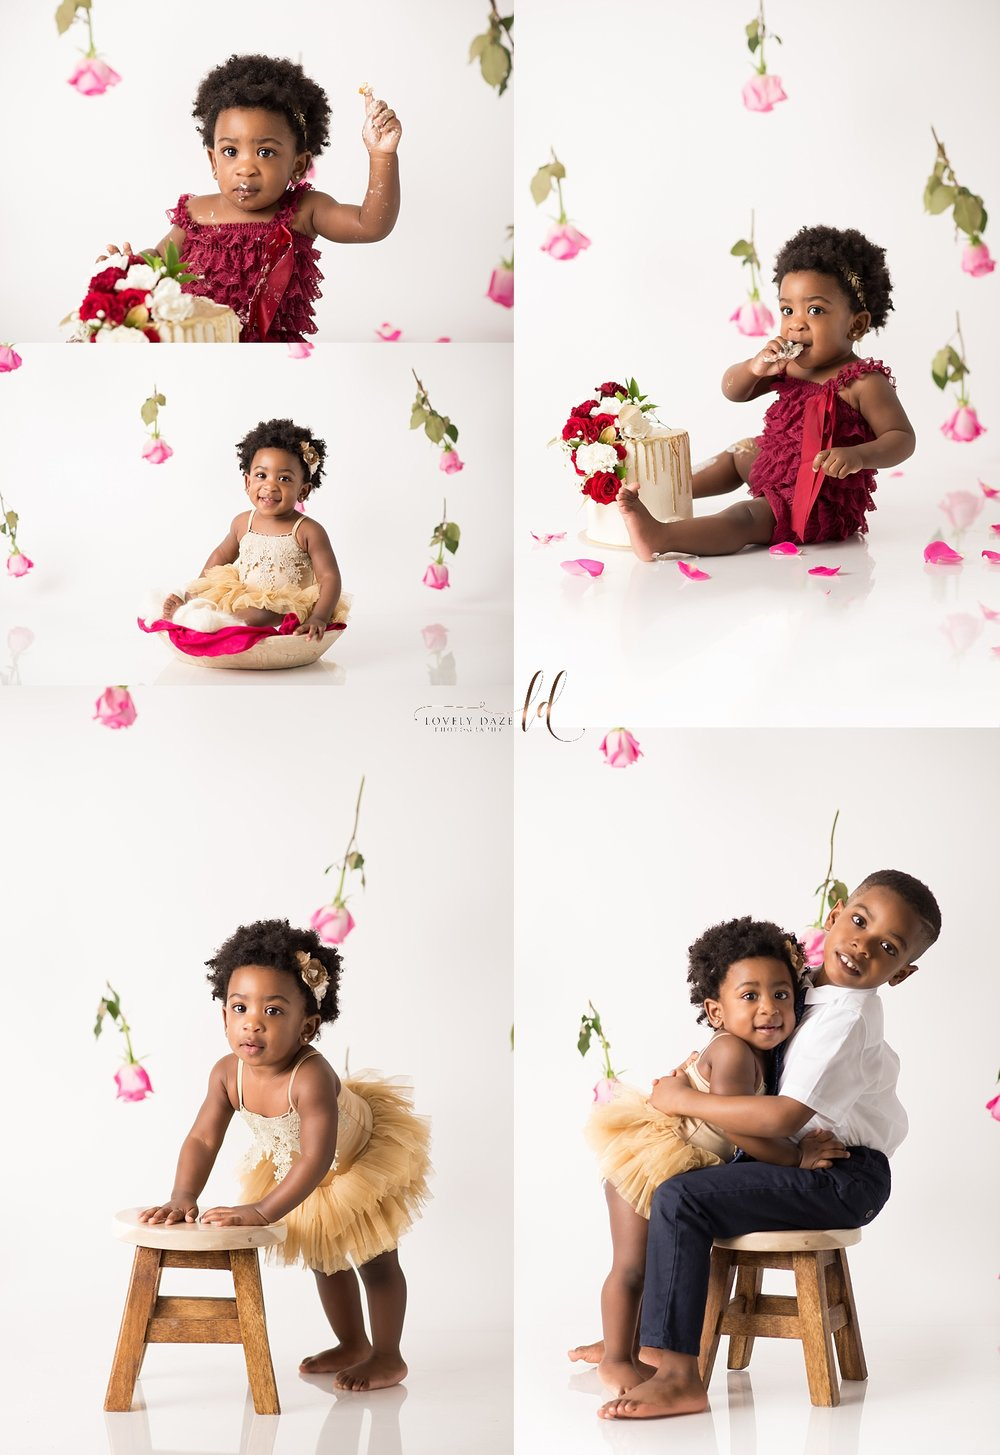 baby girl floral cake smash nj cake smash photographer lovely daze photography kenilworth nj